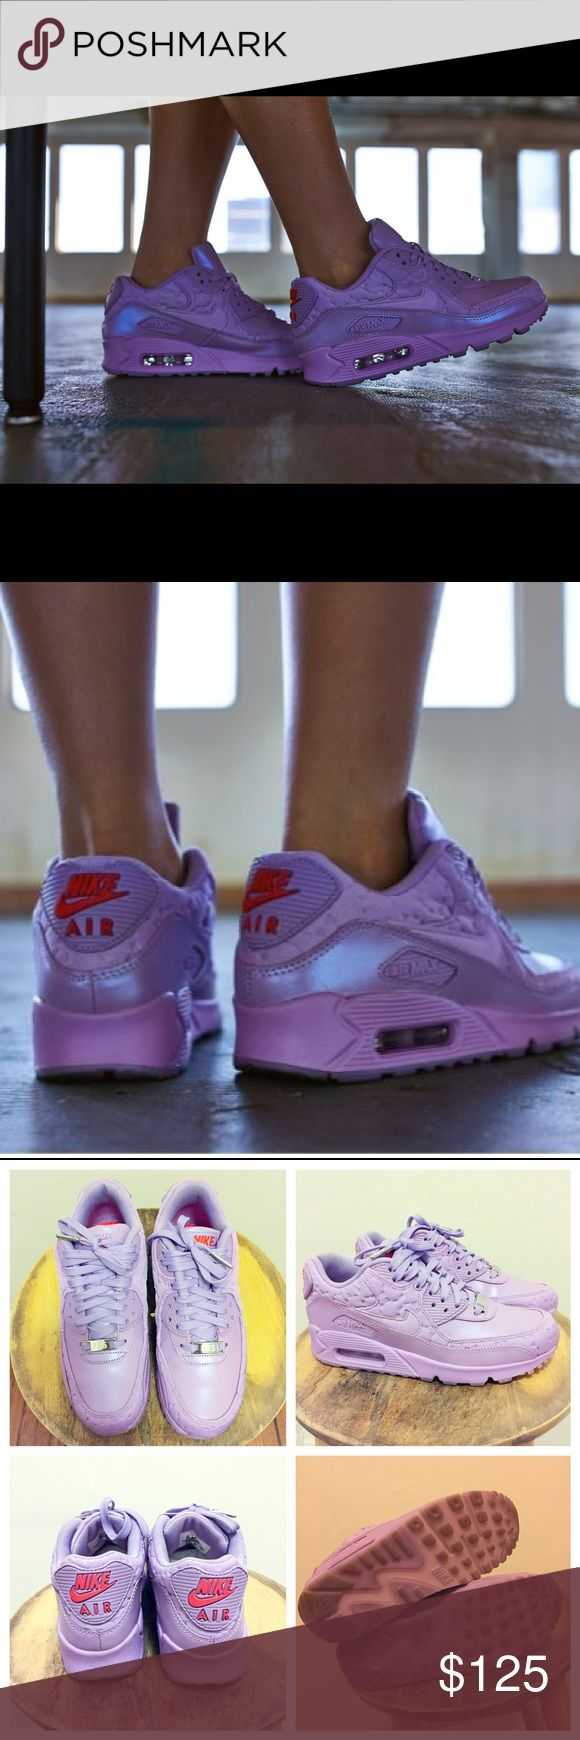 Nike Air Max 90 QS Paris Macaroon Lavender Purple Sold out everywhere except for flight club in LA and Ny. Worn 2 times. Cleaned soles, stuffed paper back inside shoe to keep form and no creases and wrapped in shoe box immediately after wearing. Clean, like new. I take very good care of my sneakers. Paid $280 at flight club in LA. Comes from smoke and pet free home. Nike Shoes Sneakers